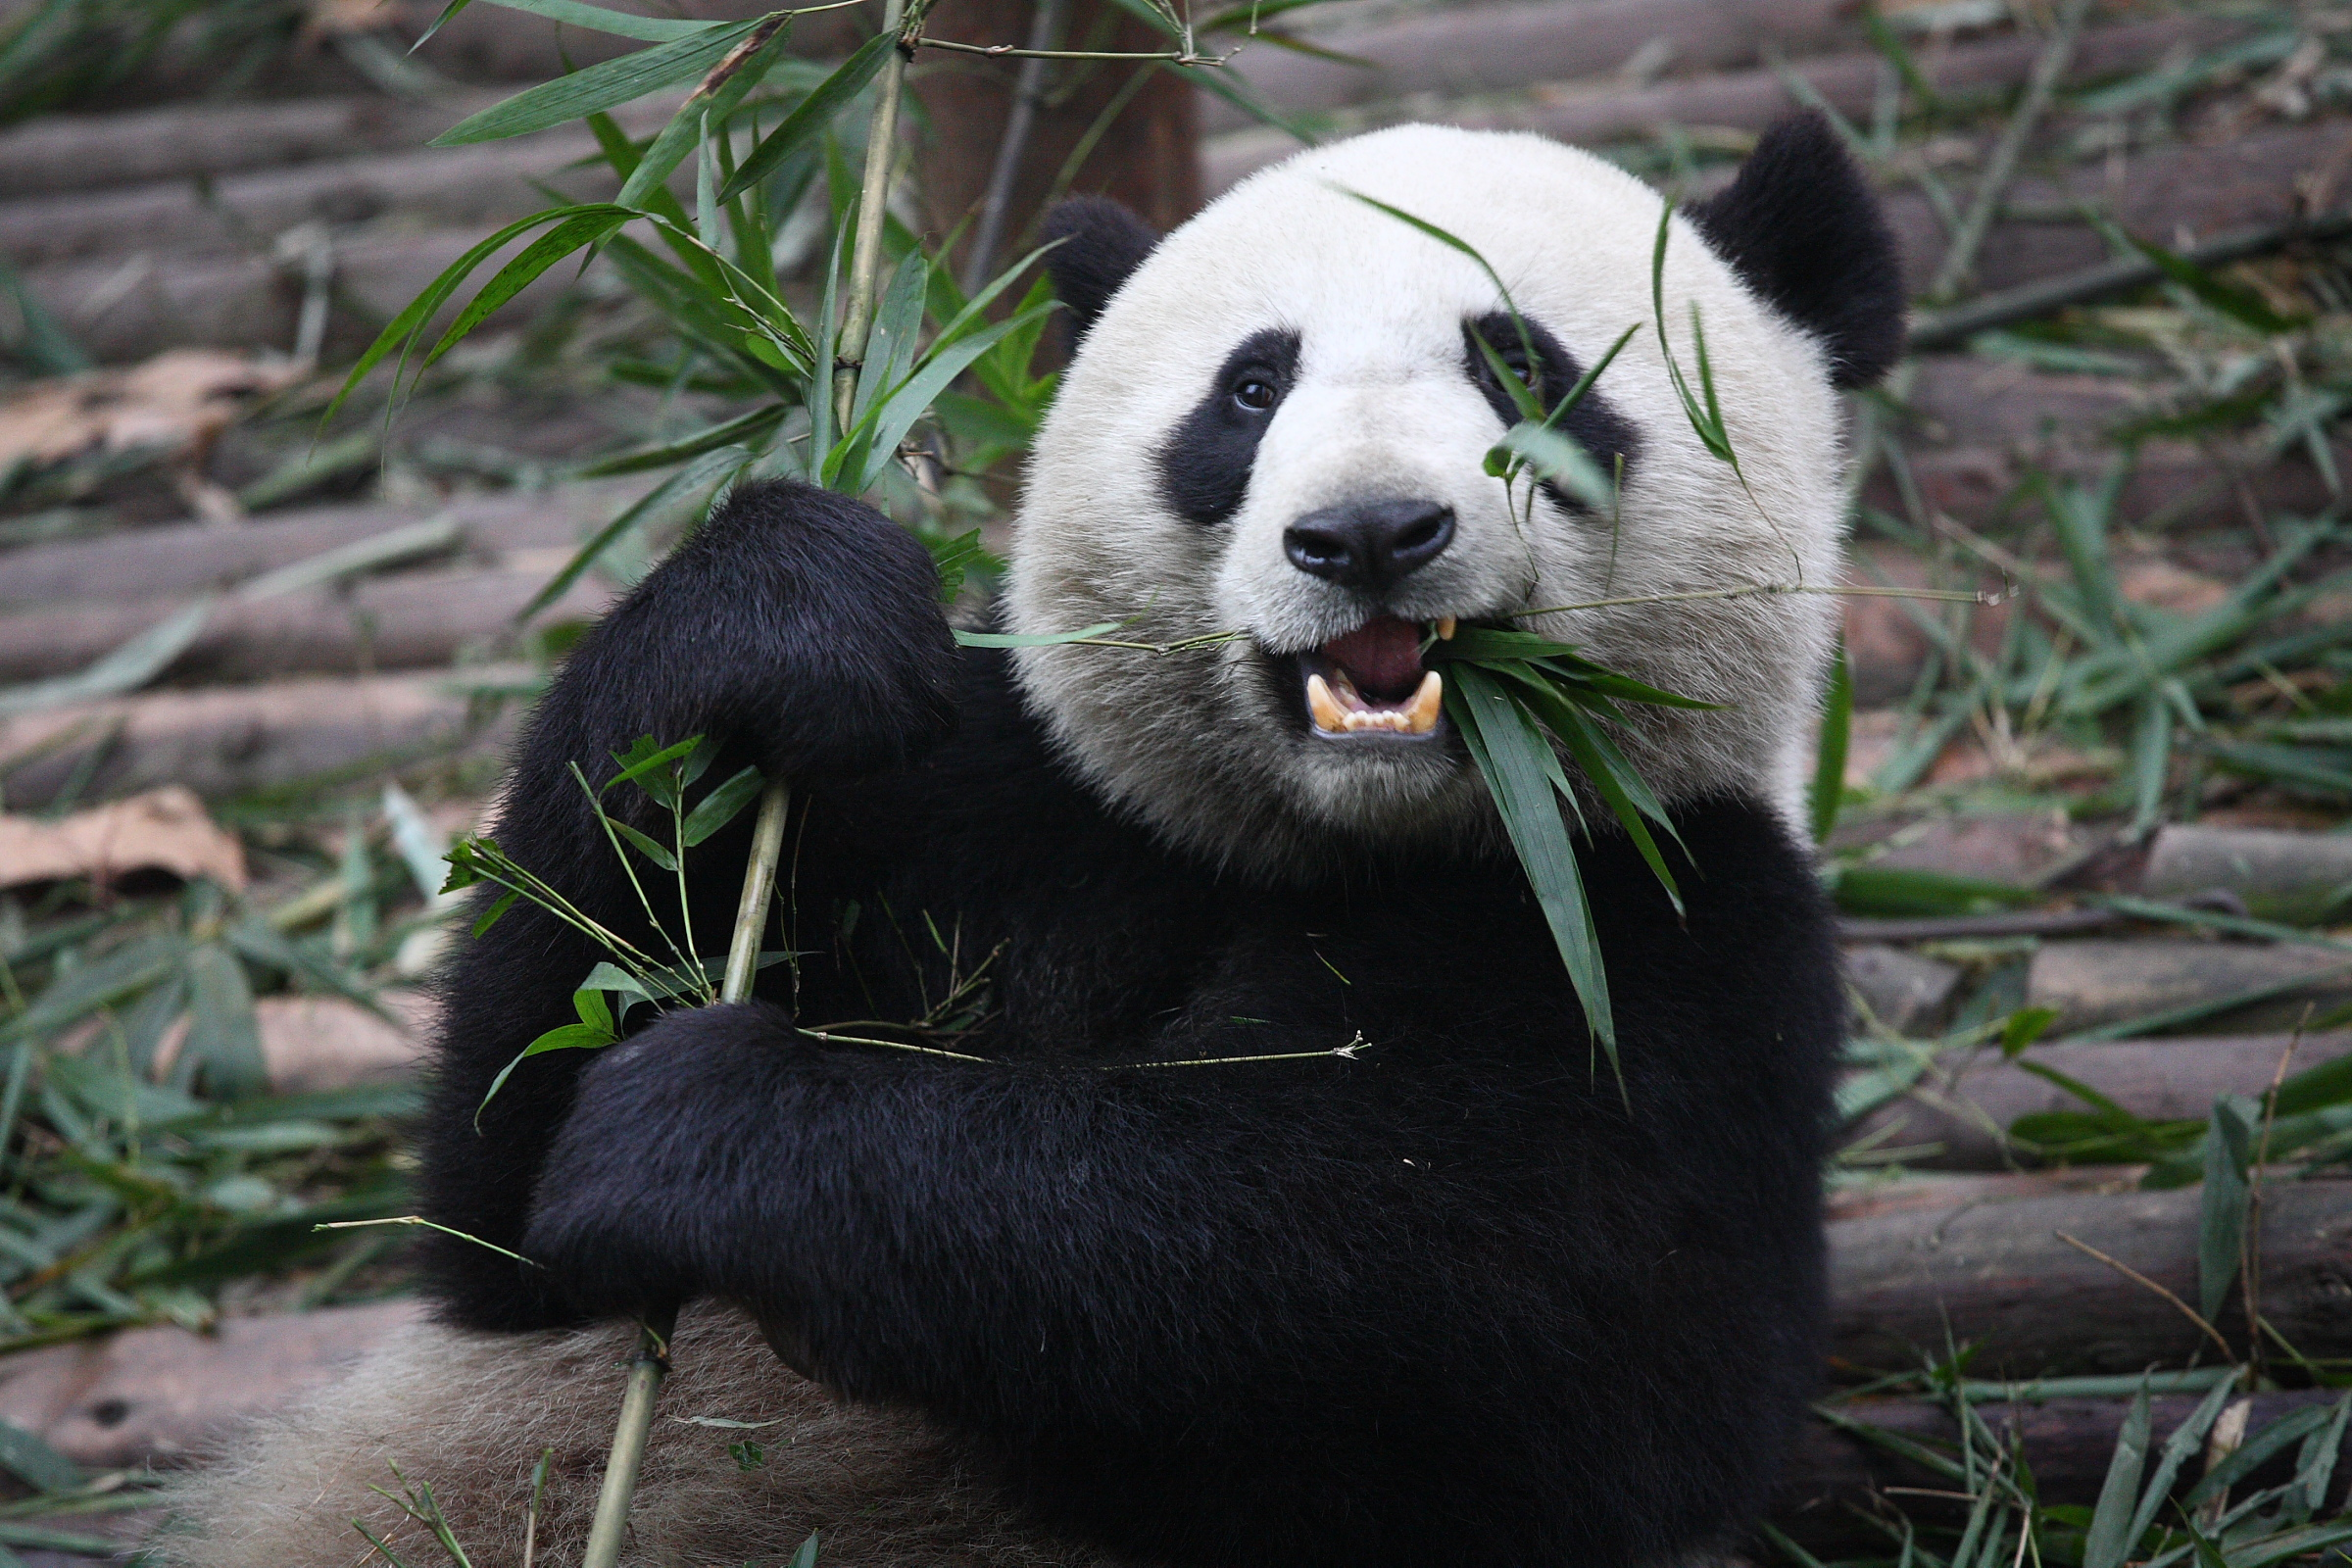 As much as 99% of a Panda's diet is Bamboo.